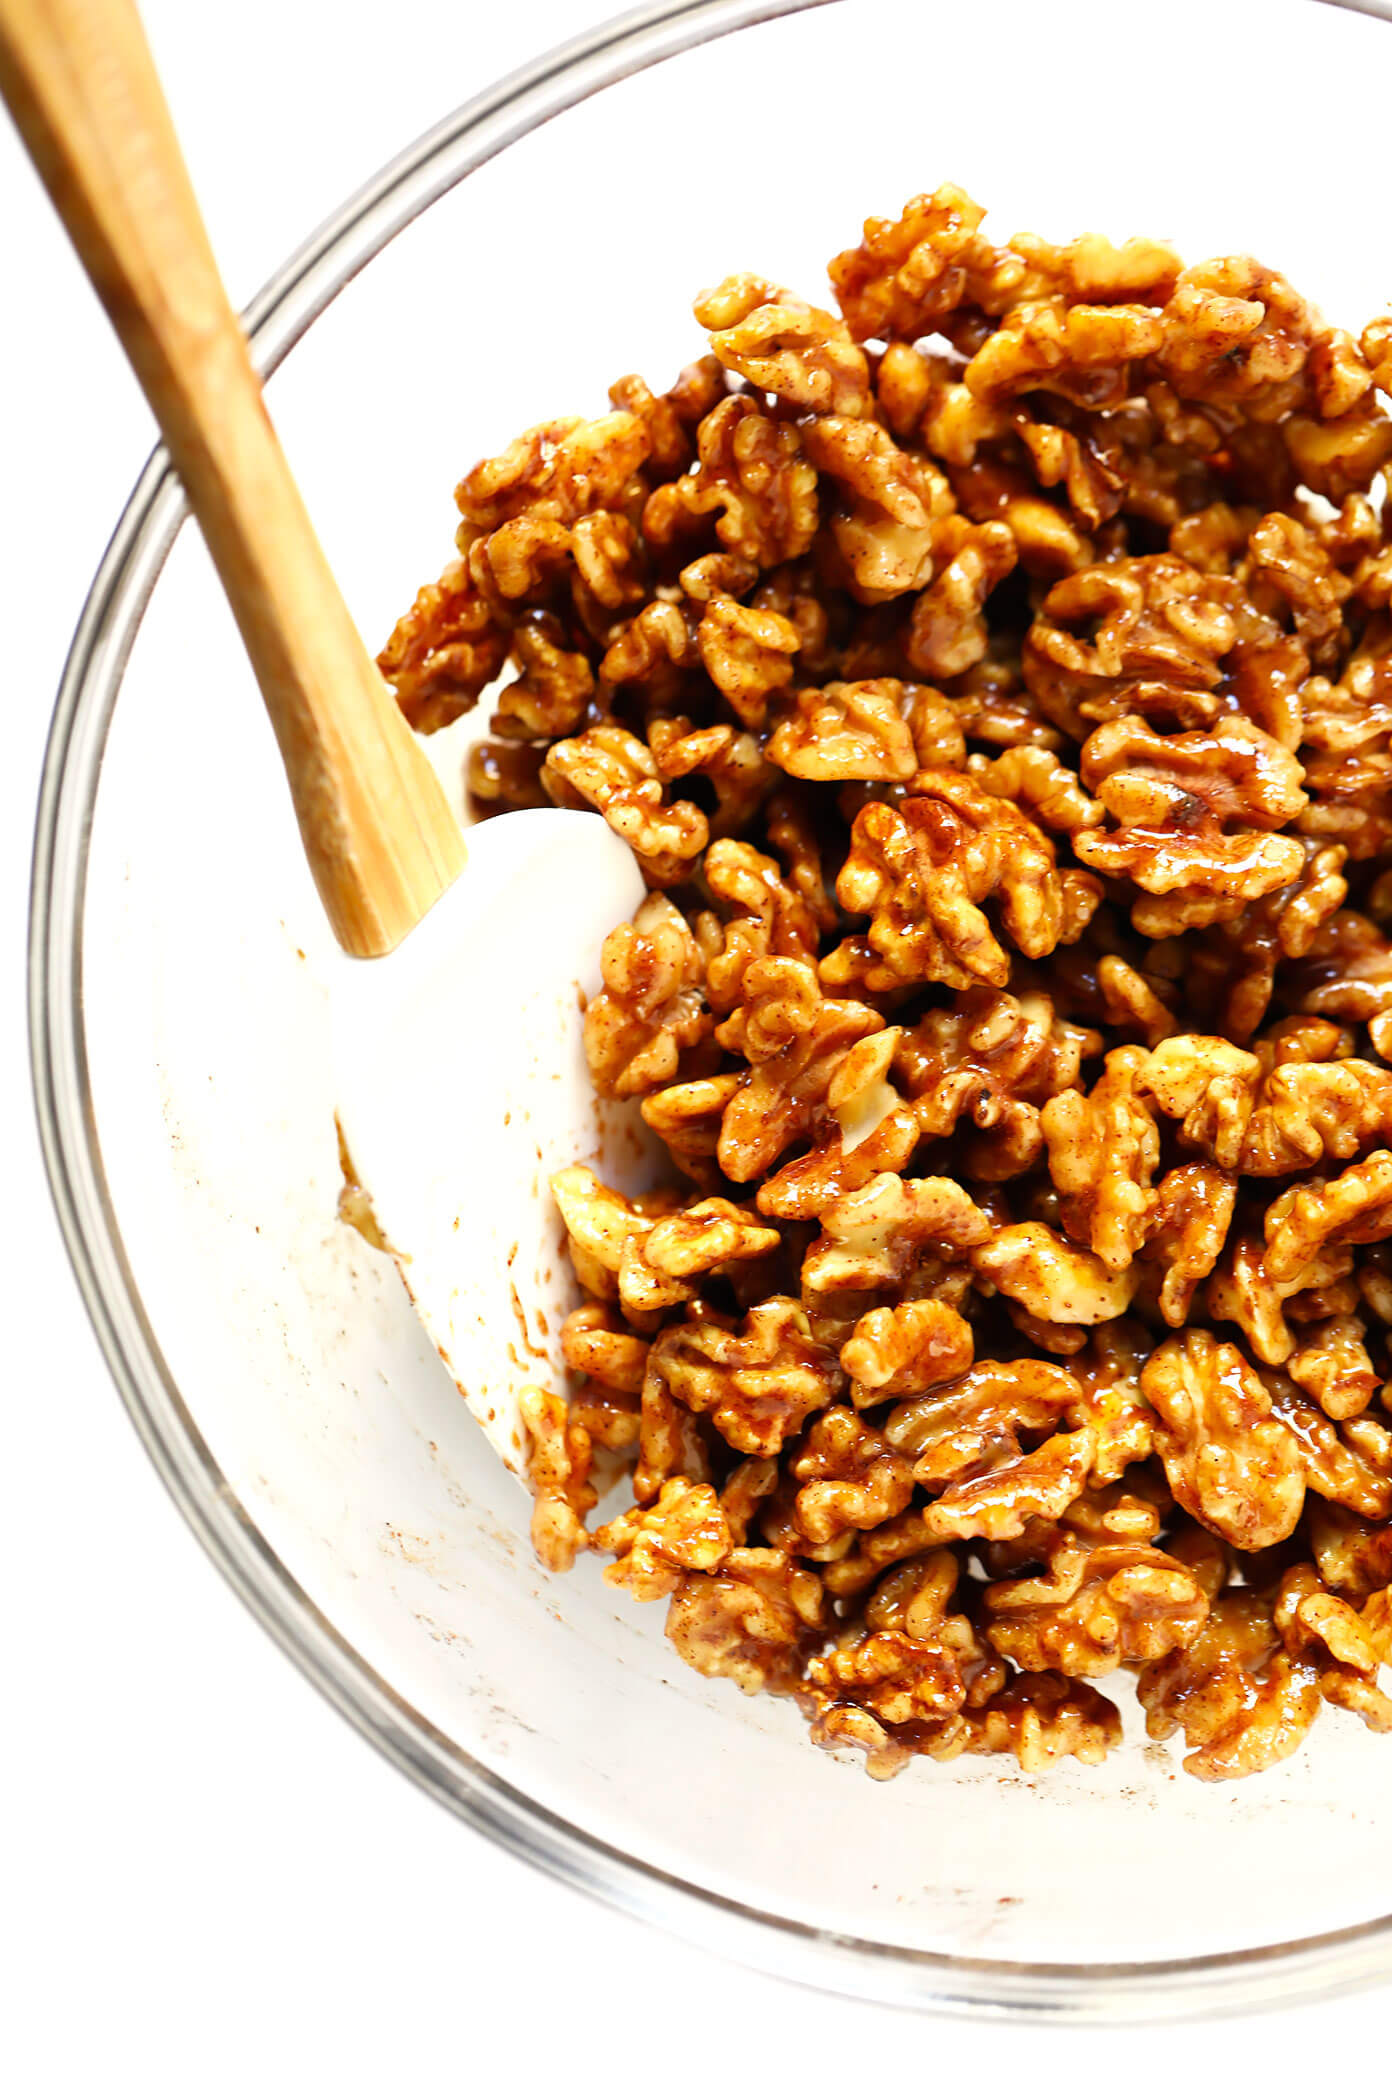 Candied Walnuts Ingredients